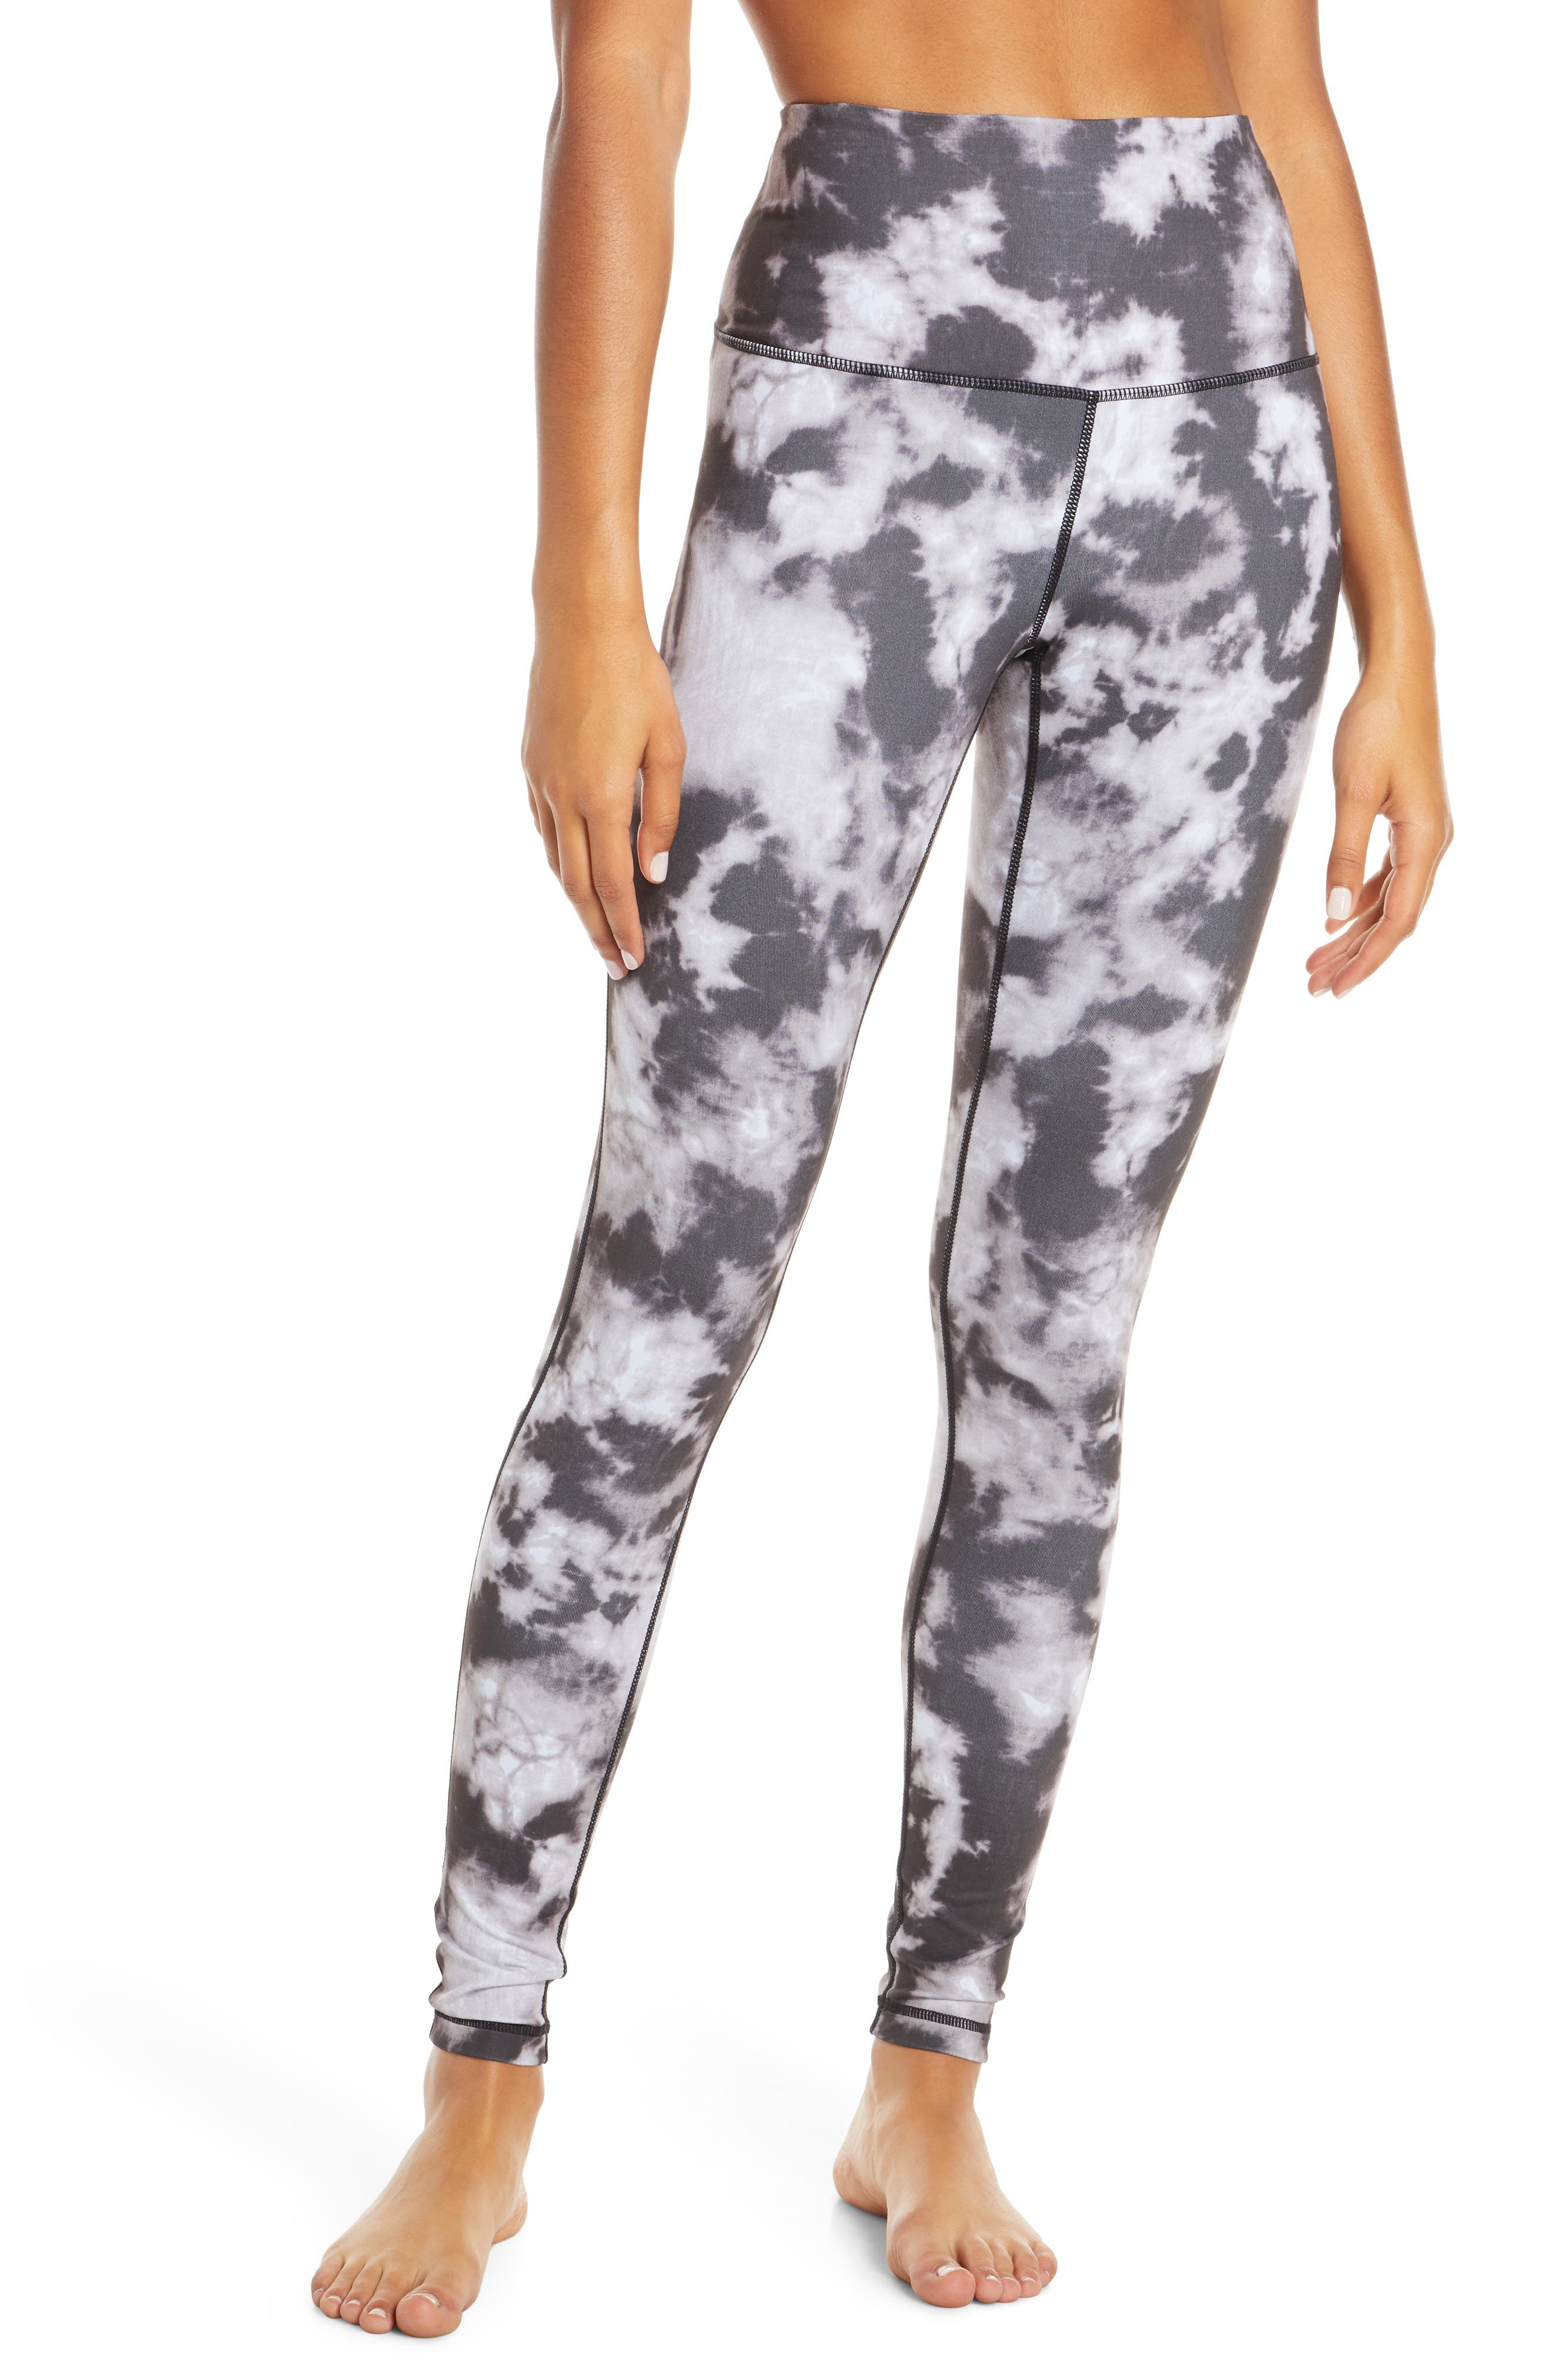 ZELLA, Live In High Waist Leggings, Main thumbnail 1, color, BLACK SUN BLEACH PRINT